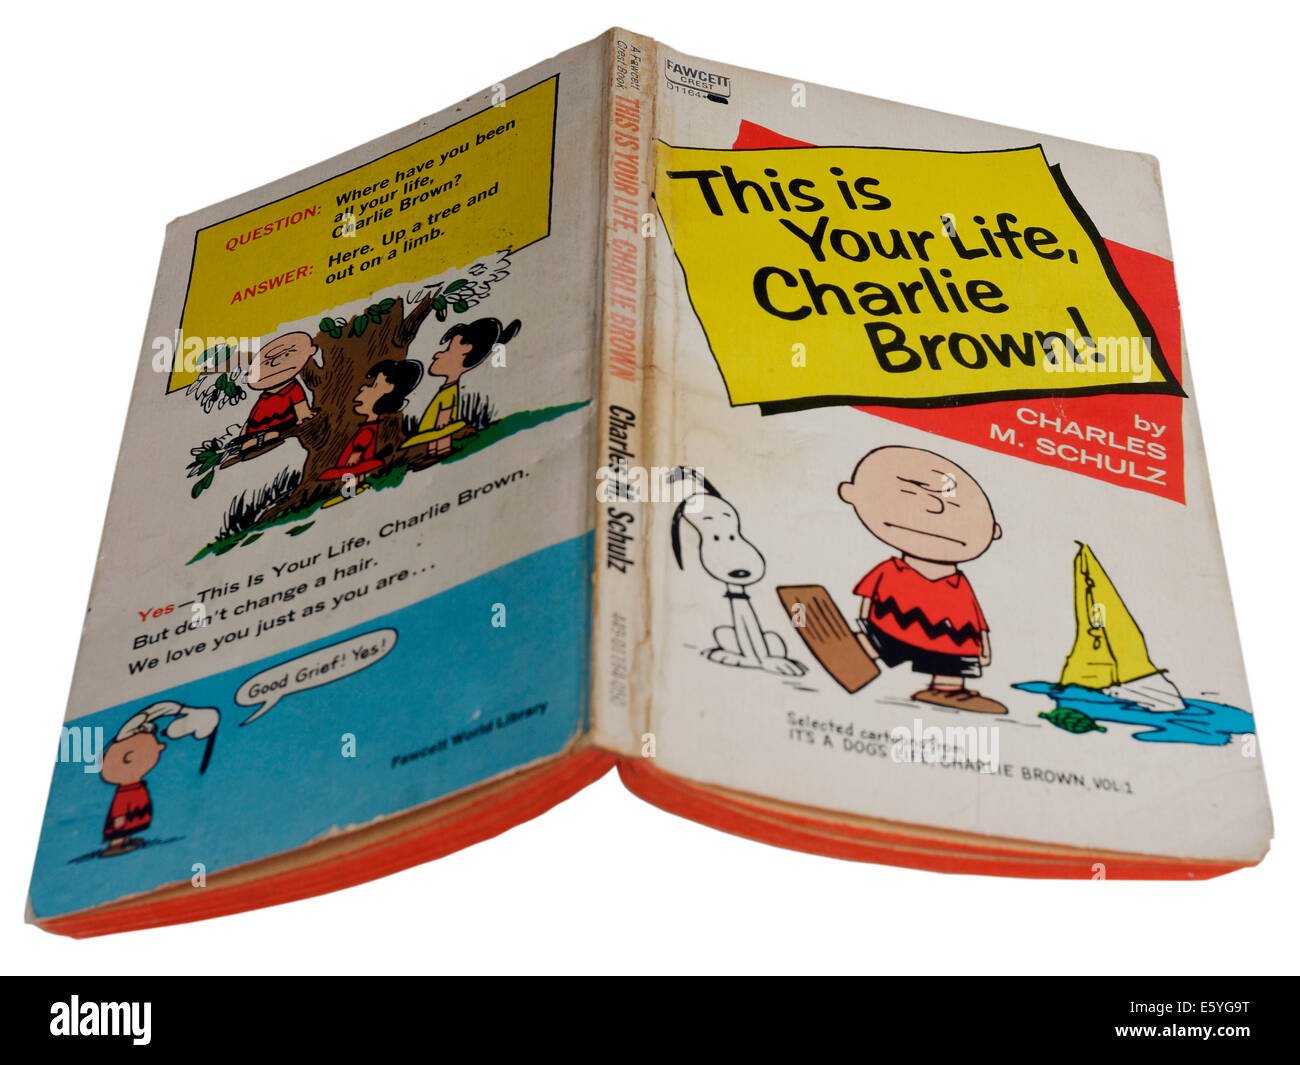 This is Your Life, Charlie Brown by Charles Schulz Stock Photo